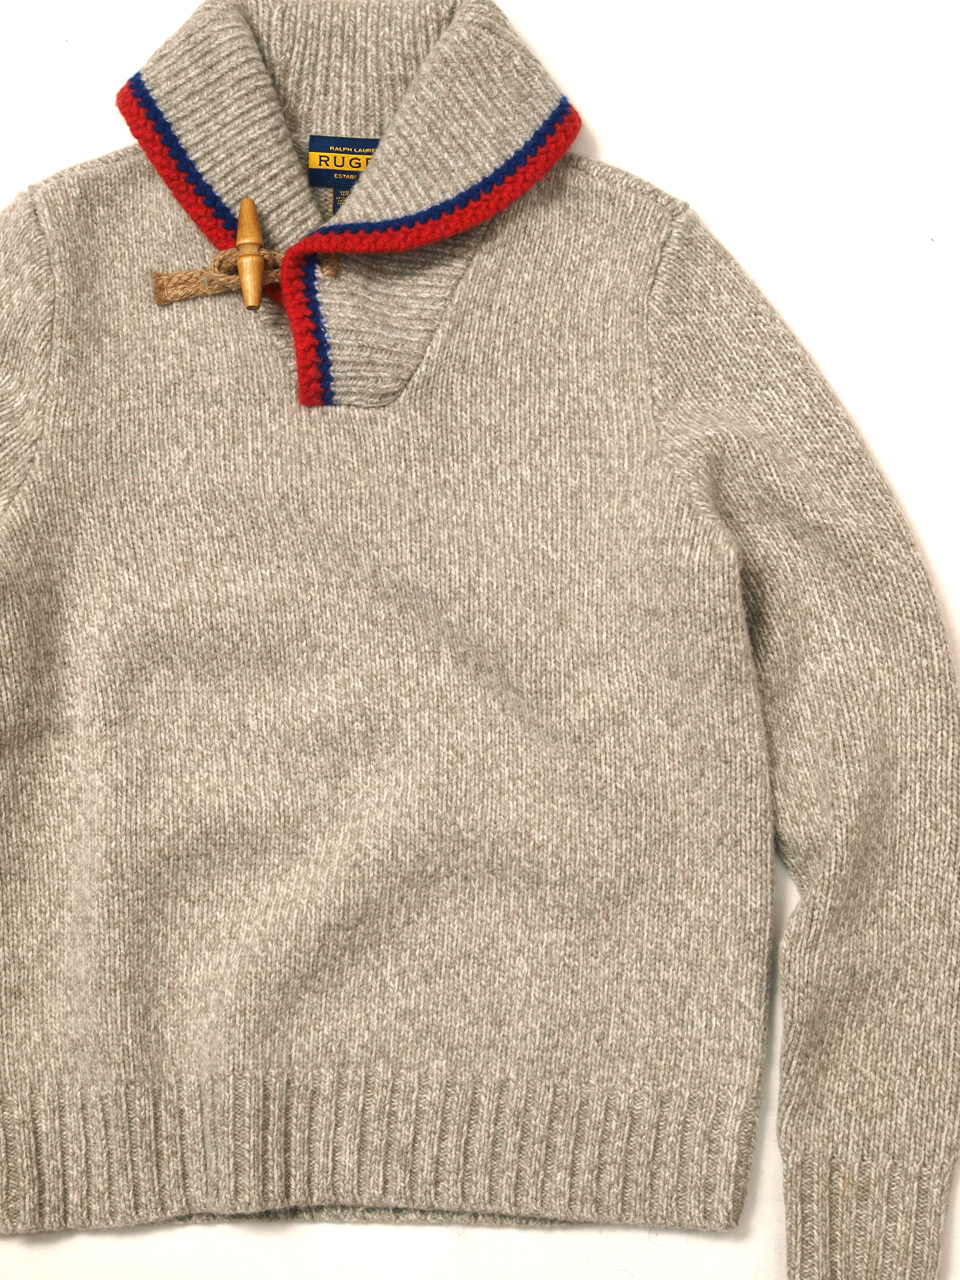 Rugby / Toggle Shawl Sweater